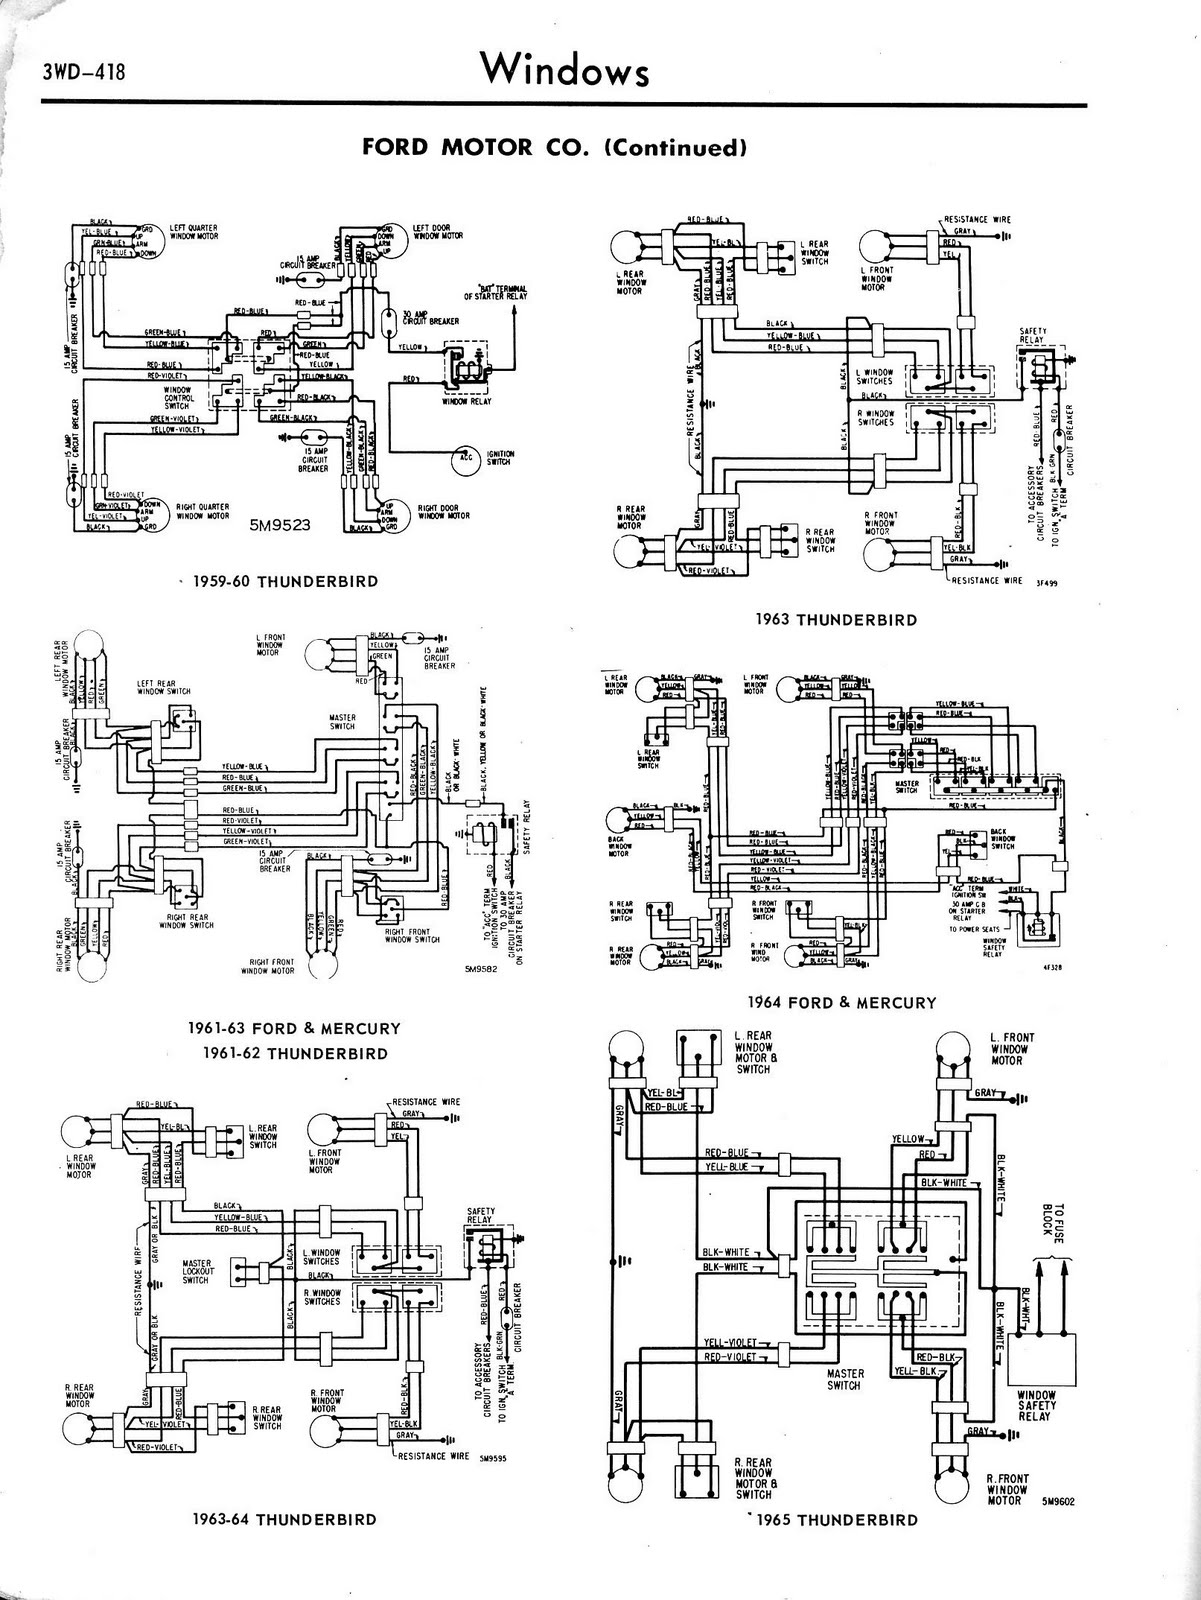 1965+Ford+Thunderbird+Window+Controls+Diagram wiring diagram for 1972 ford f100 the wiring diagram Wiring Harness Wiring- Diagram at n-0.co